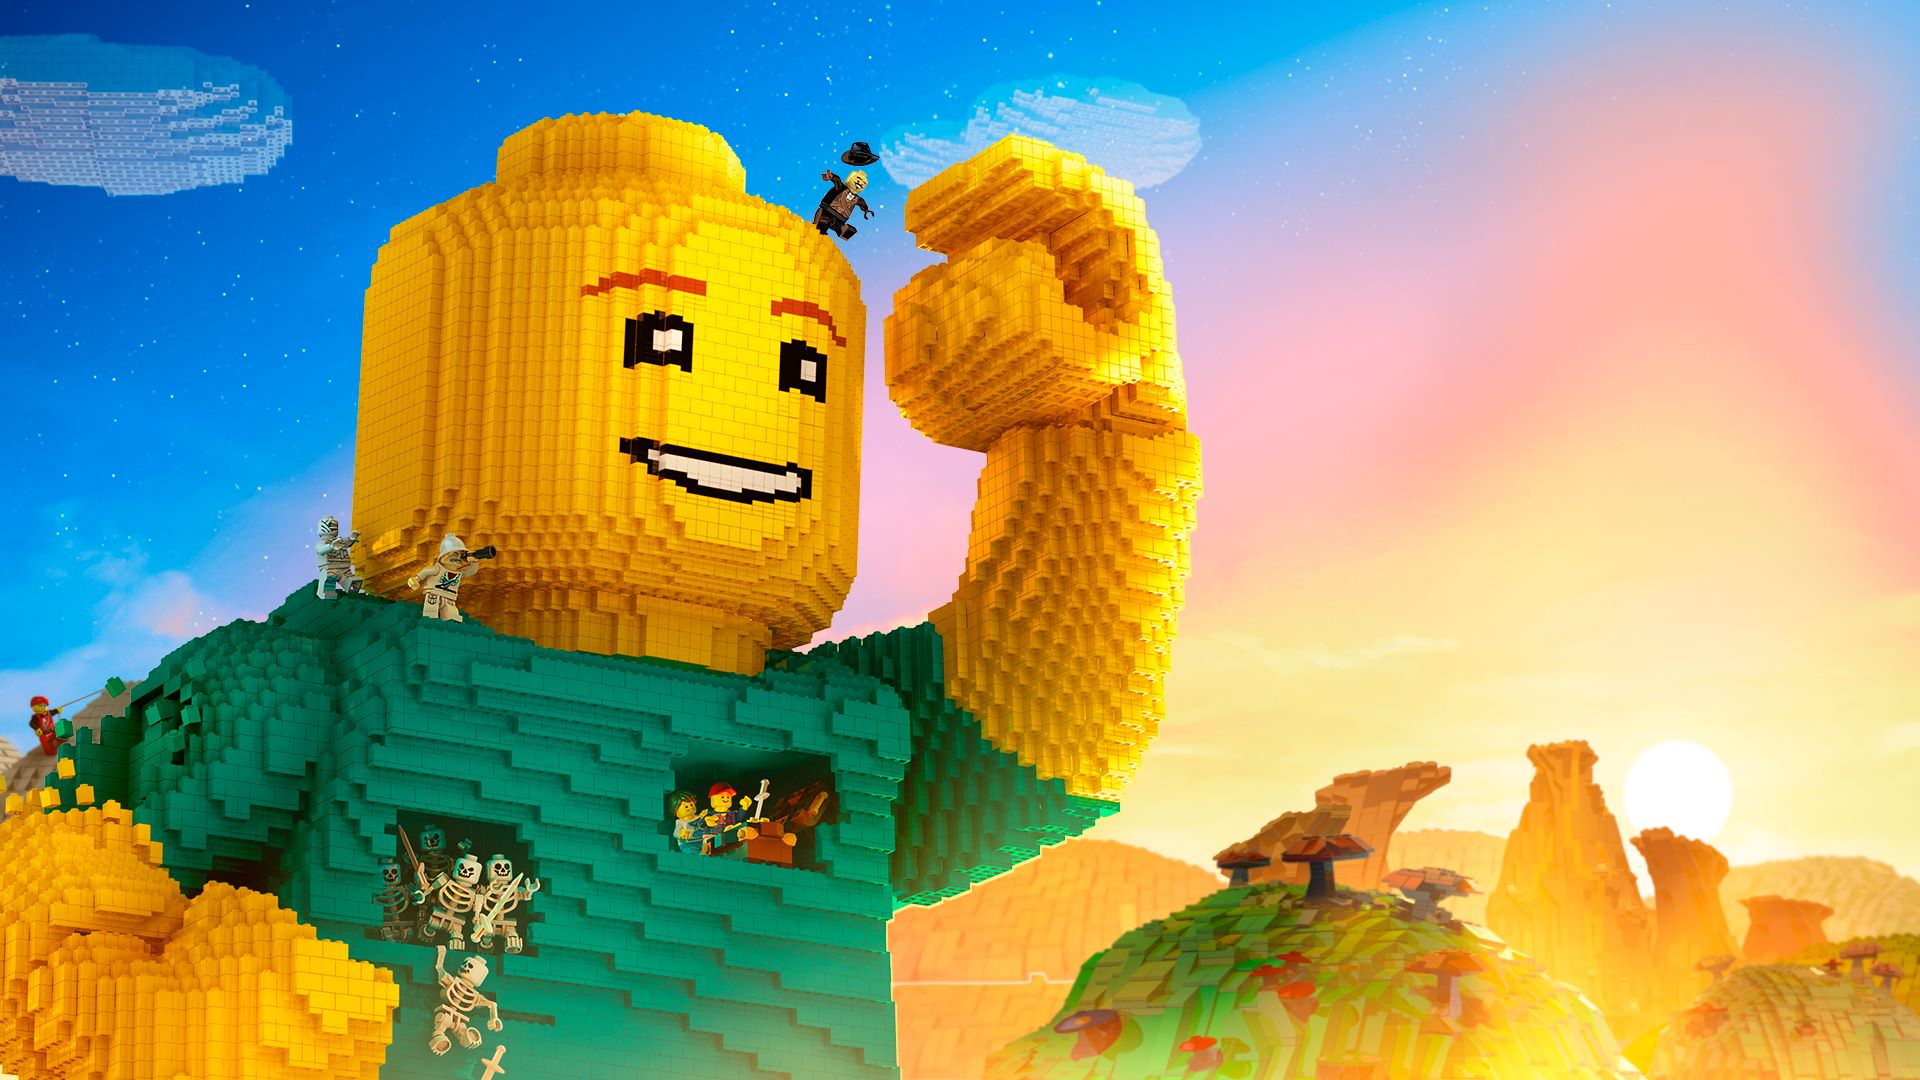 Background image for VIP, the loyalty program of Lego.